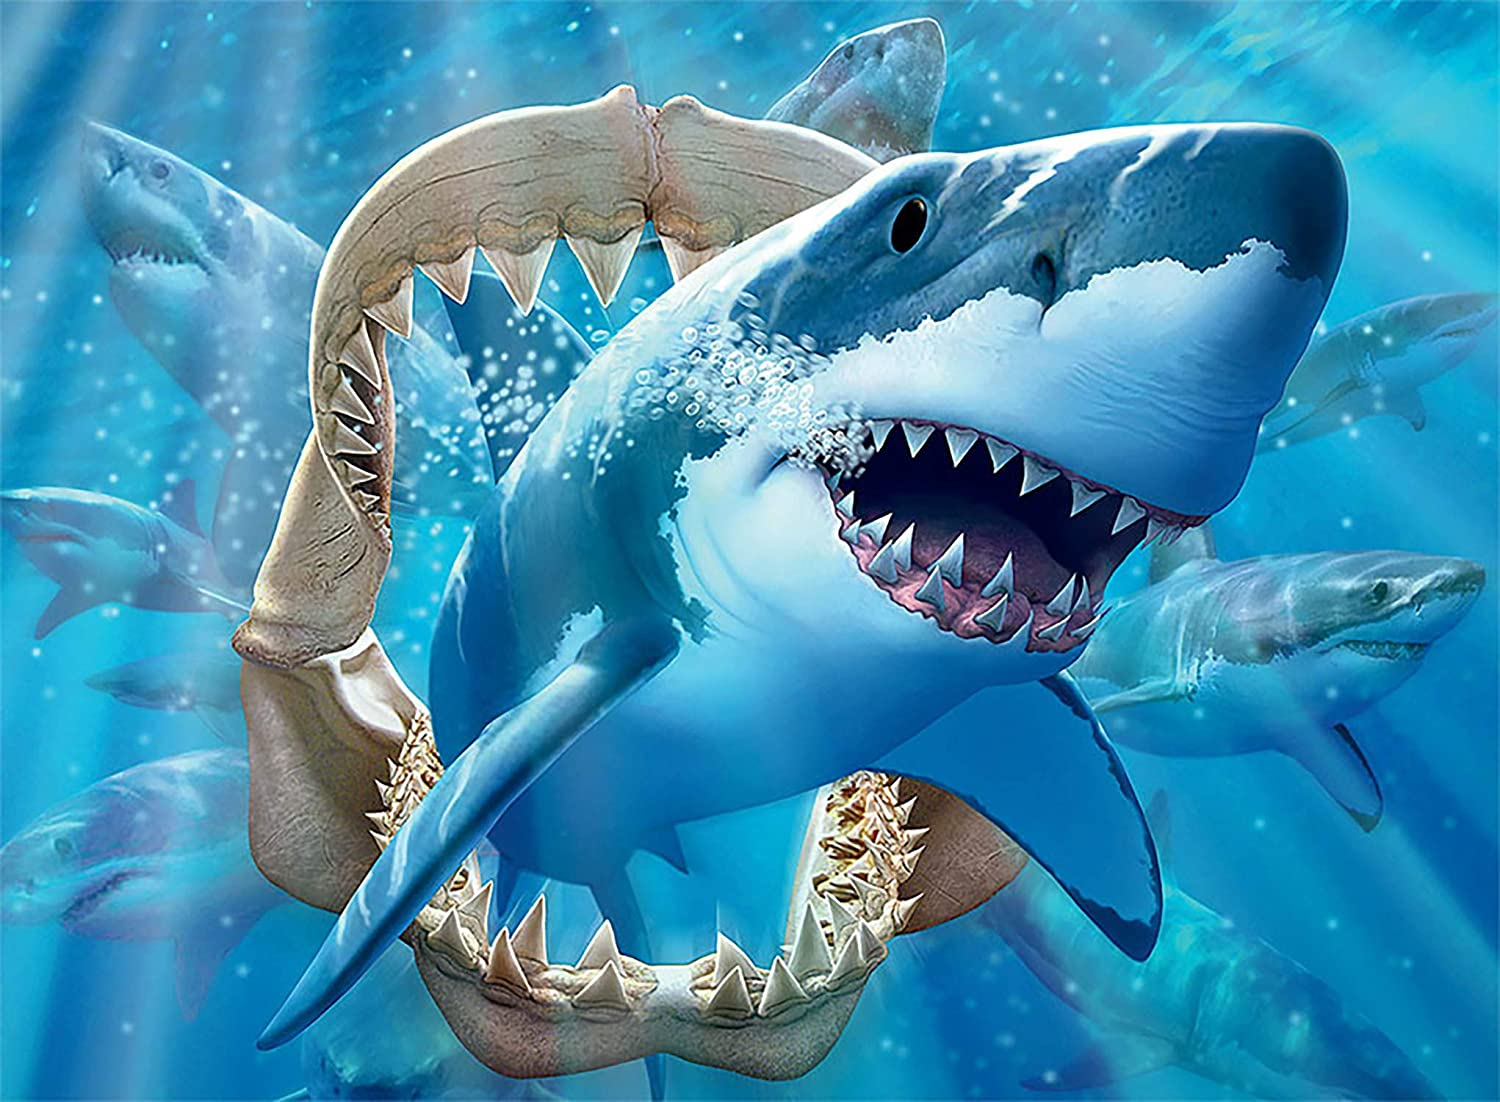 Ceaco Undersea Glow Great White Delight Jigsaw Puzzle